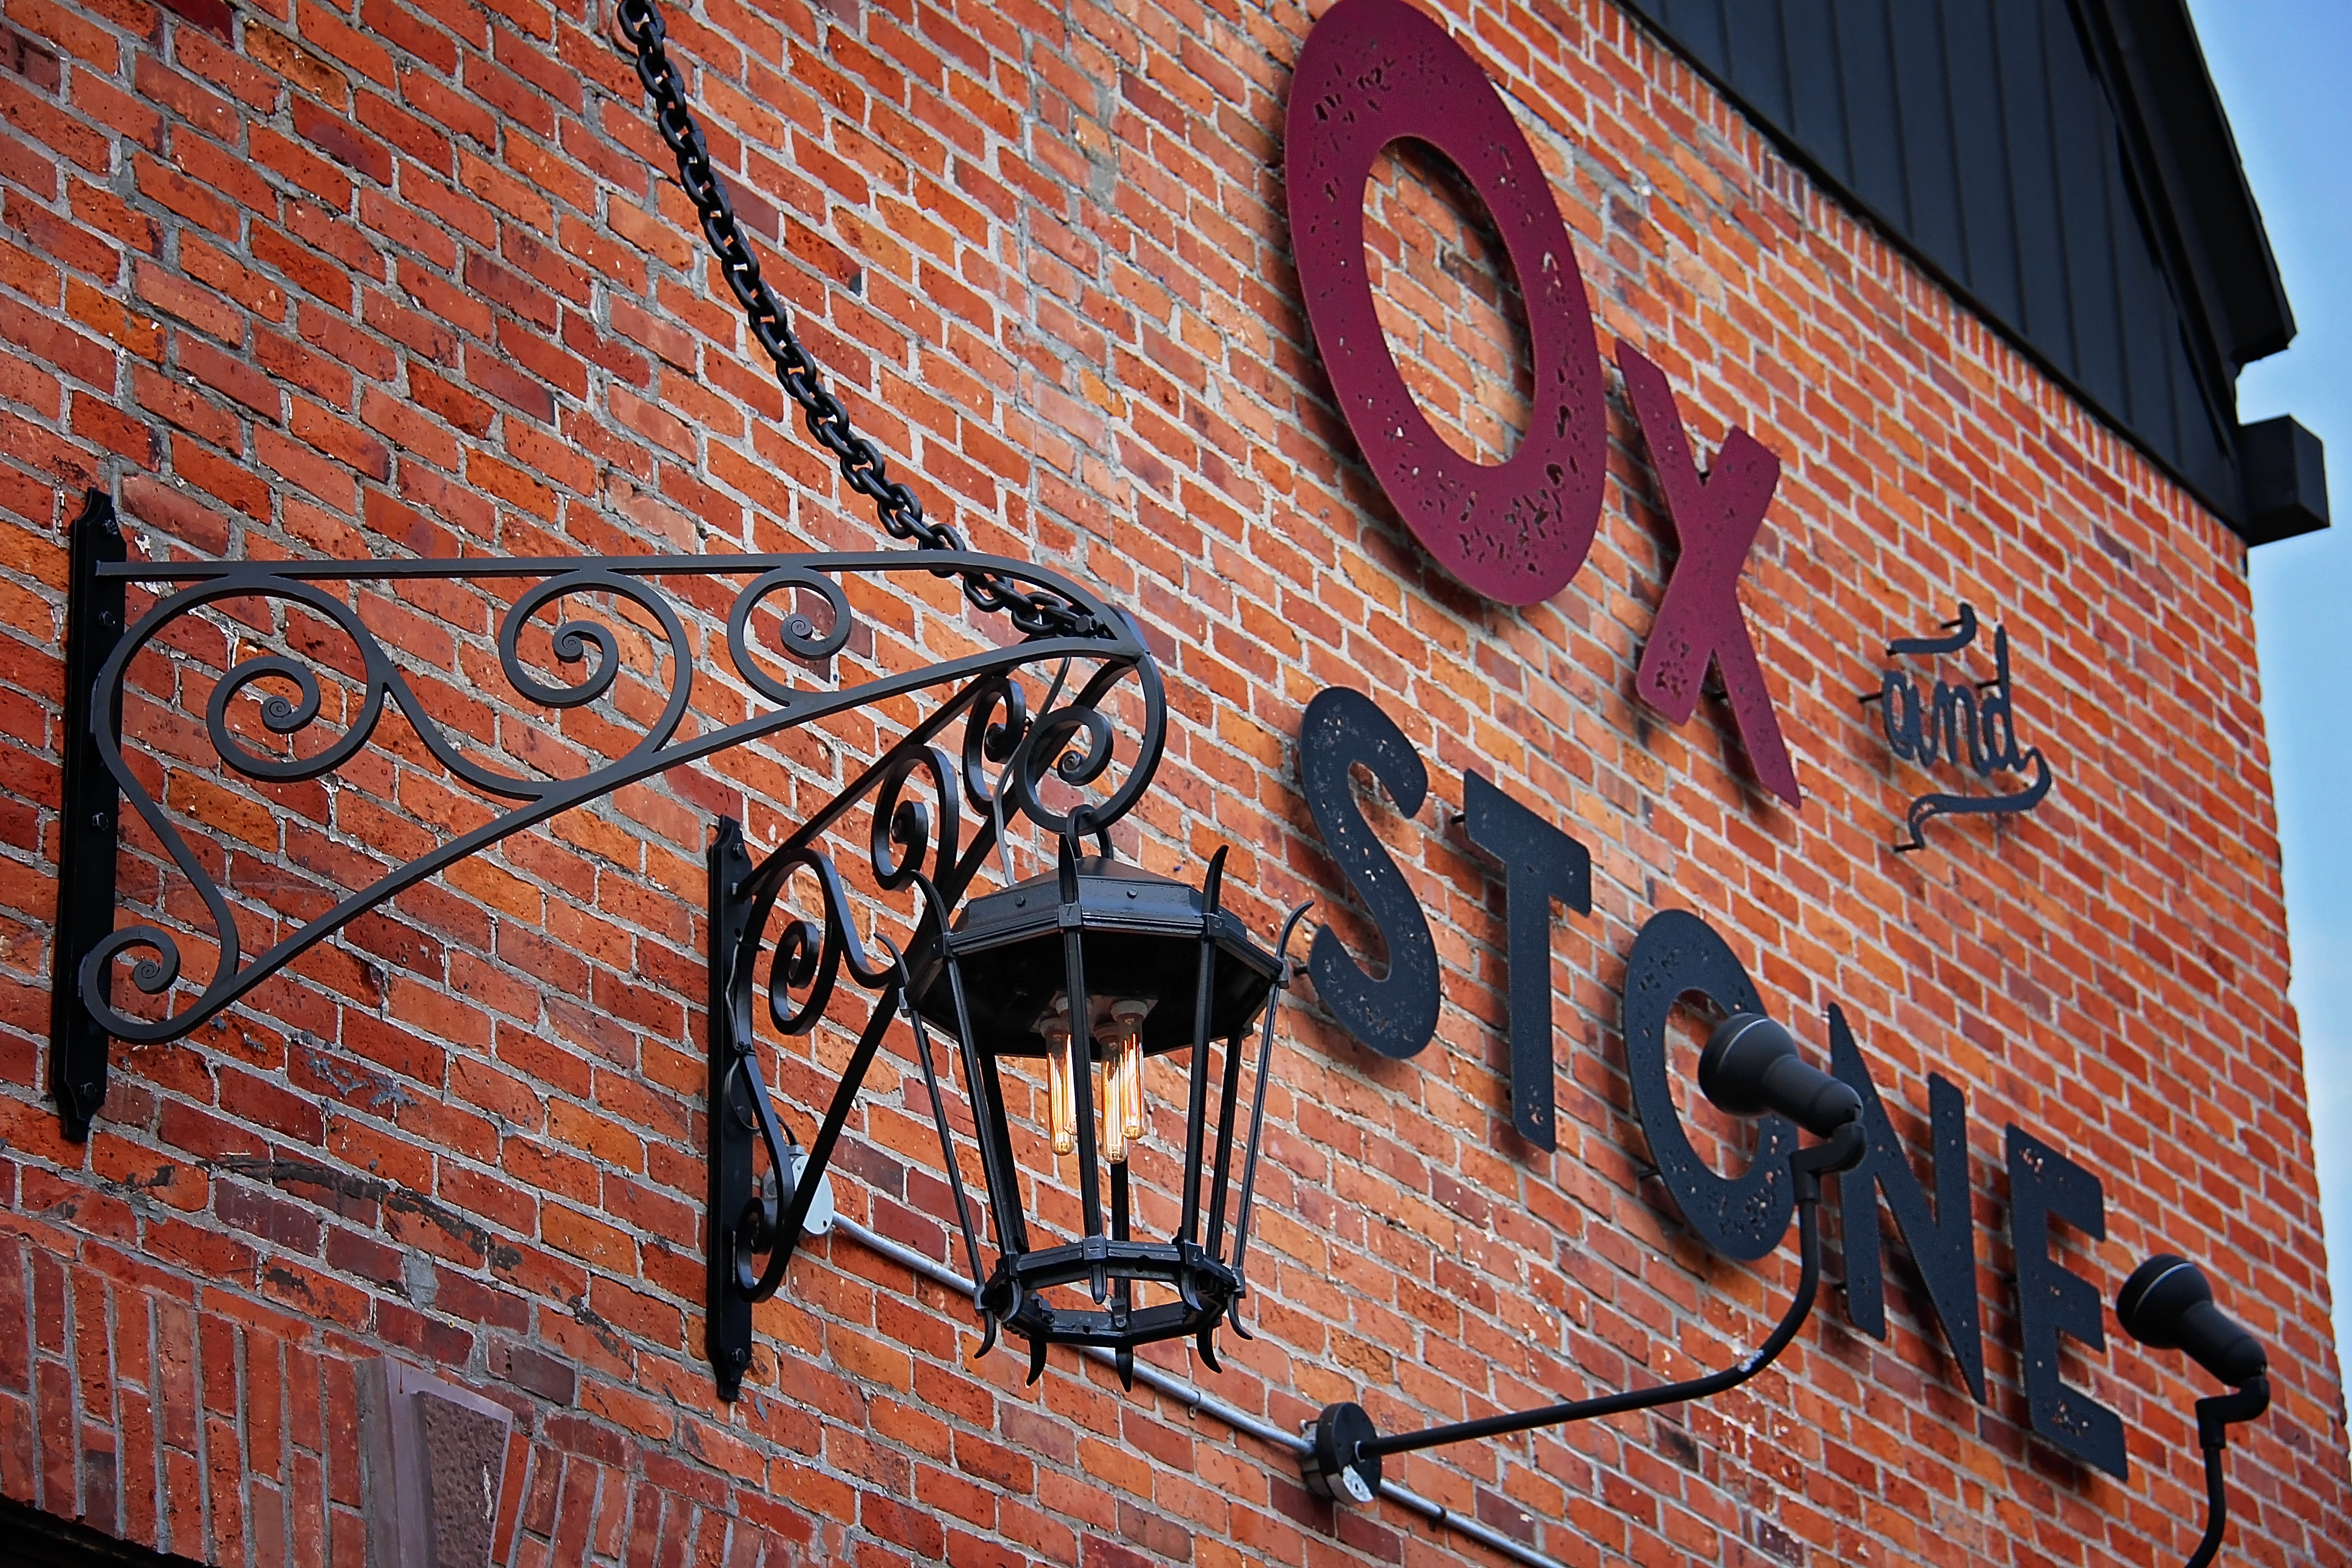 Ox and Stone Exterior Light and Signage